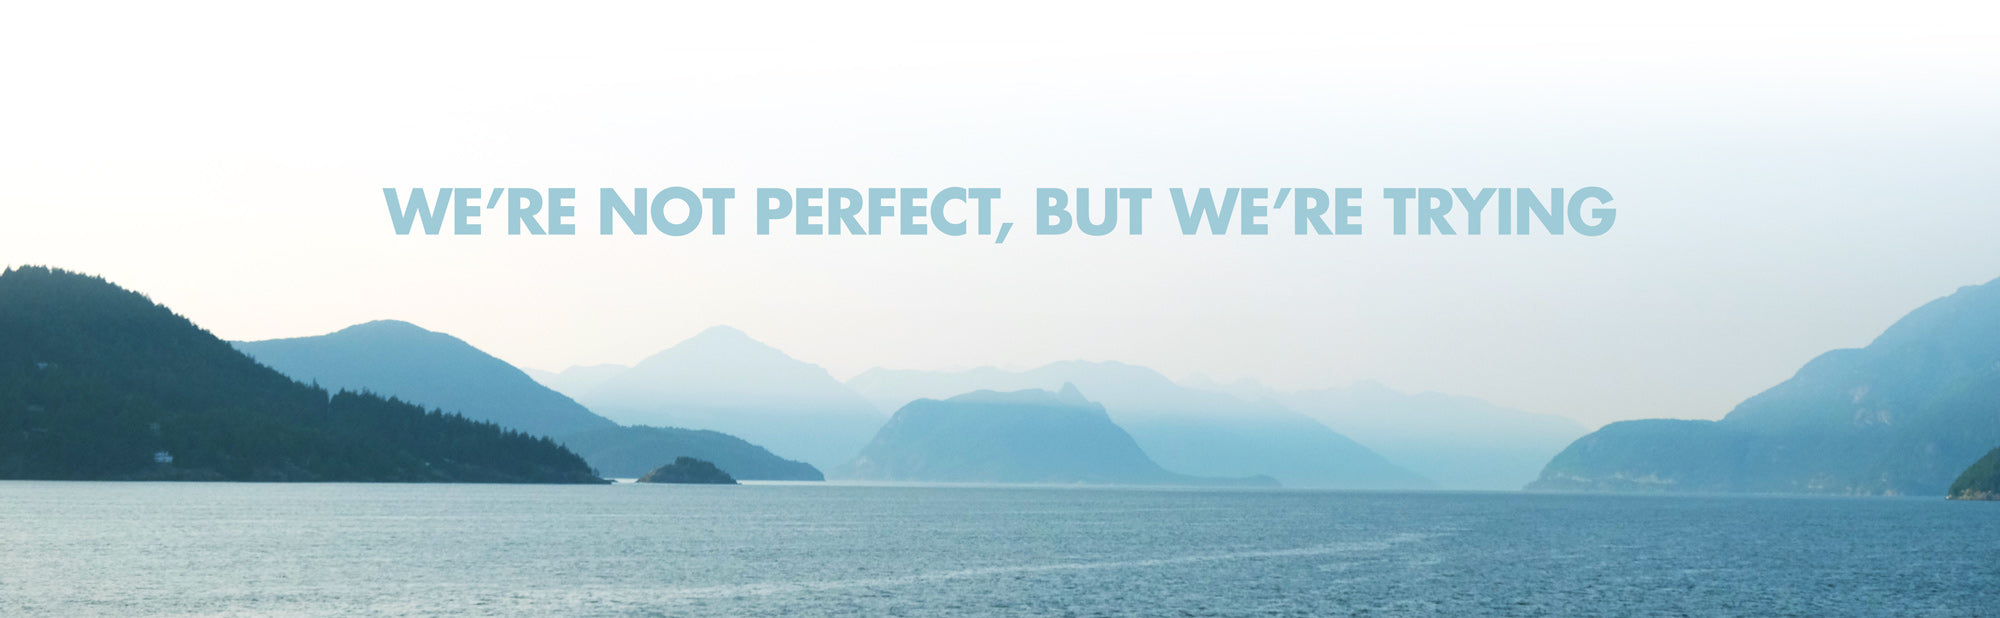 We're Not Perfect, But We're Trying  |  Radically Better Underwear